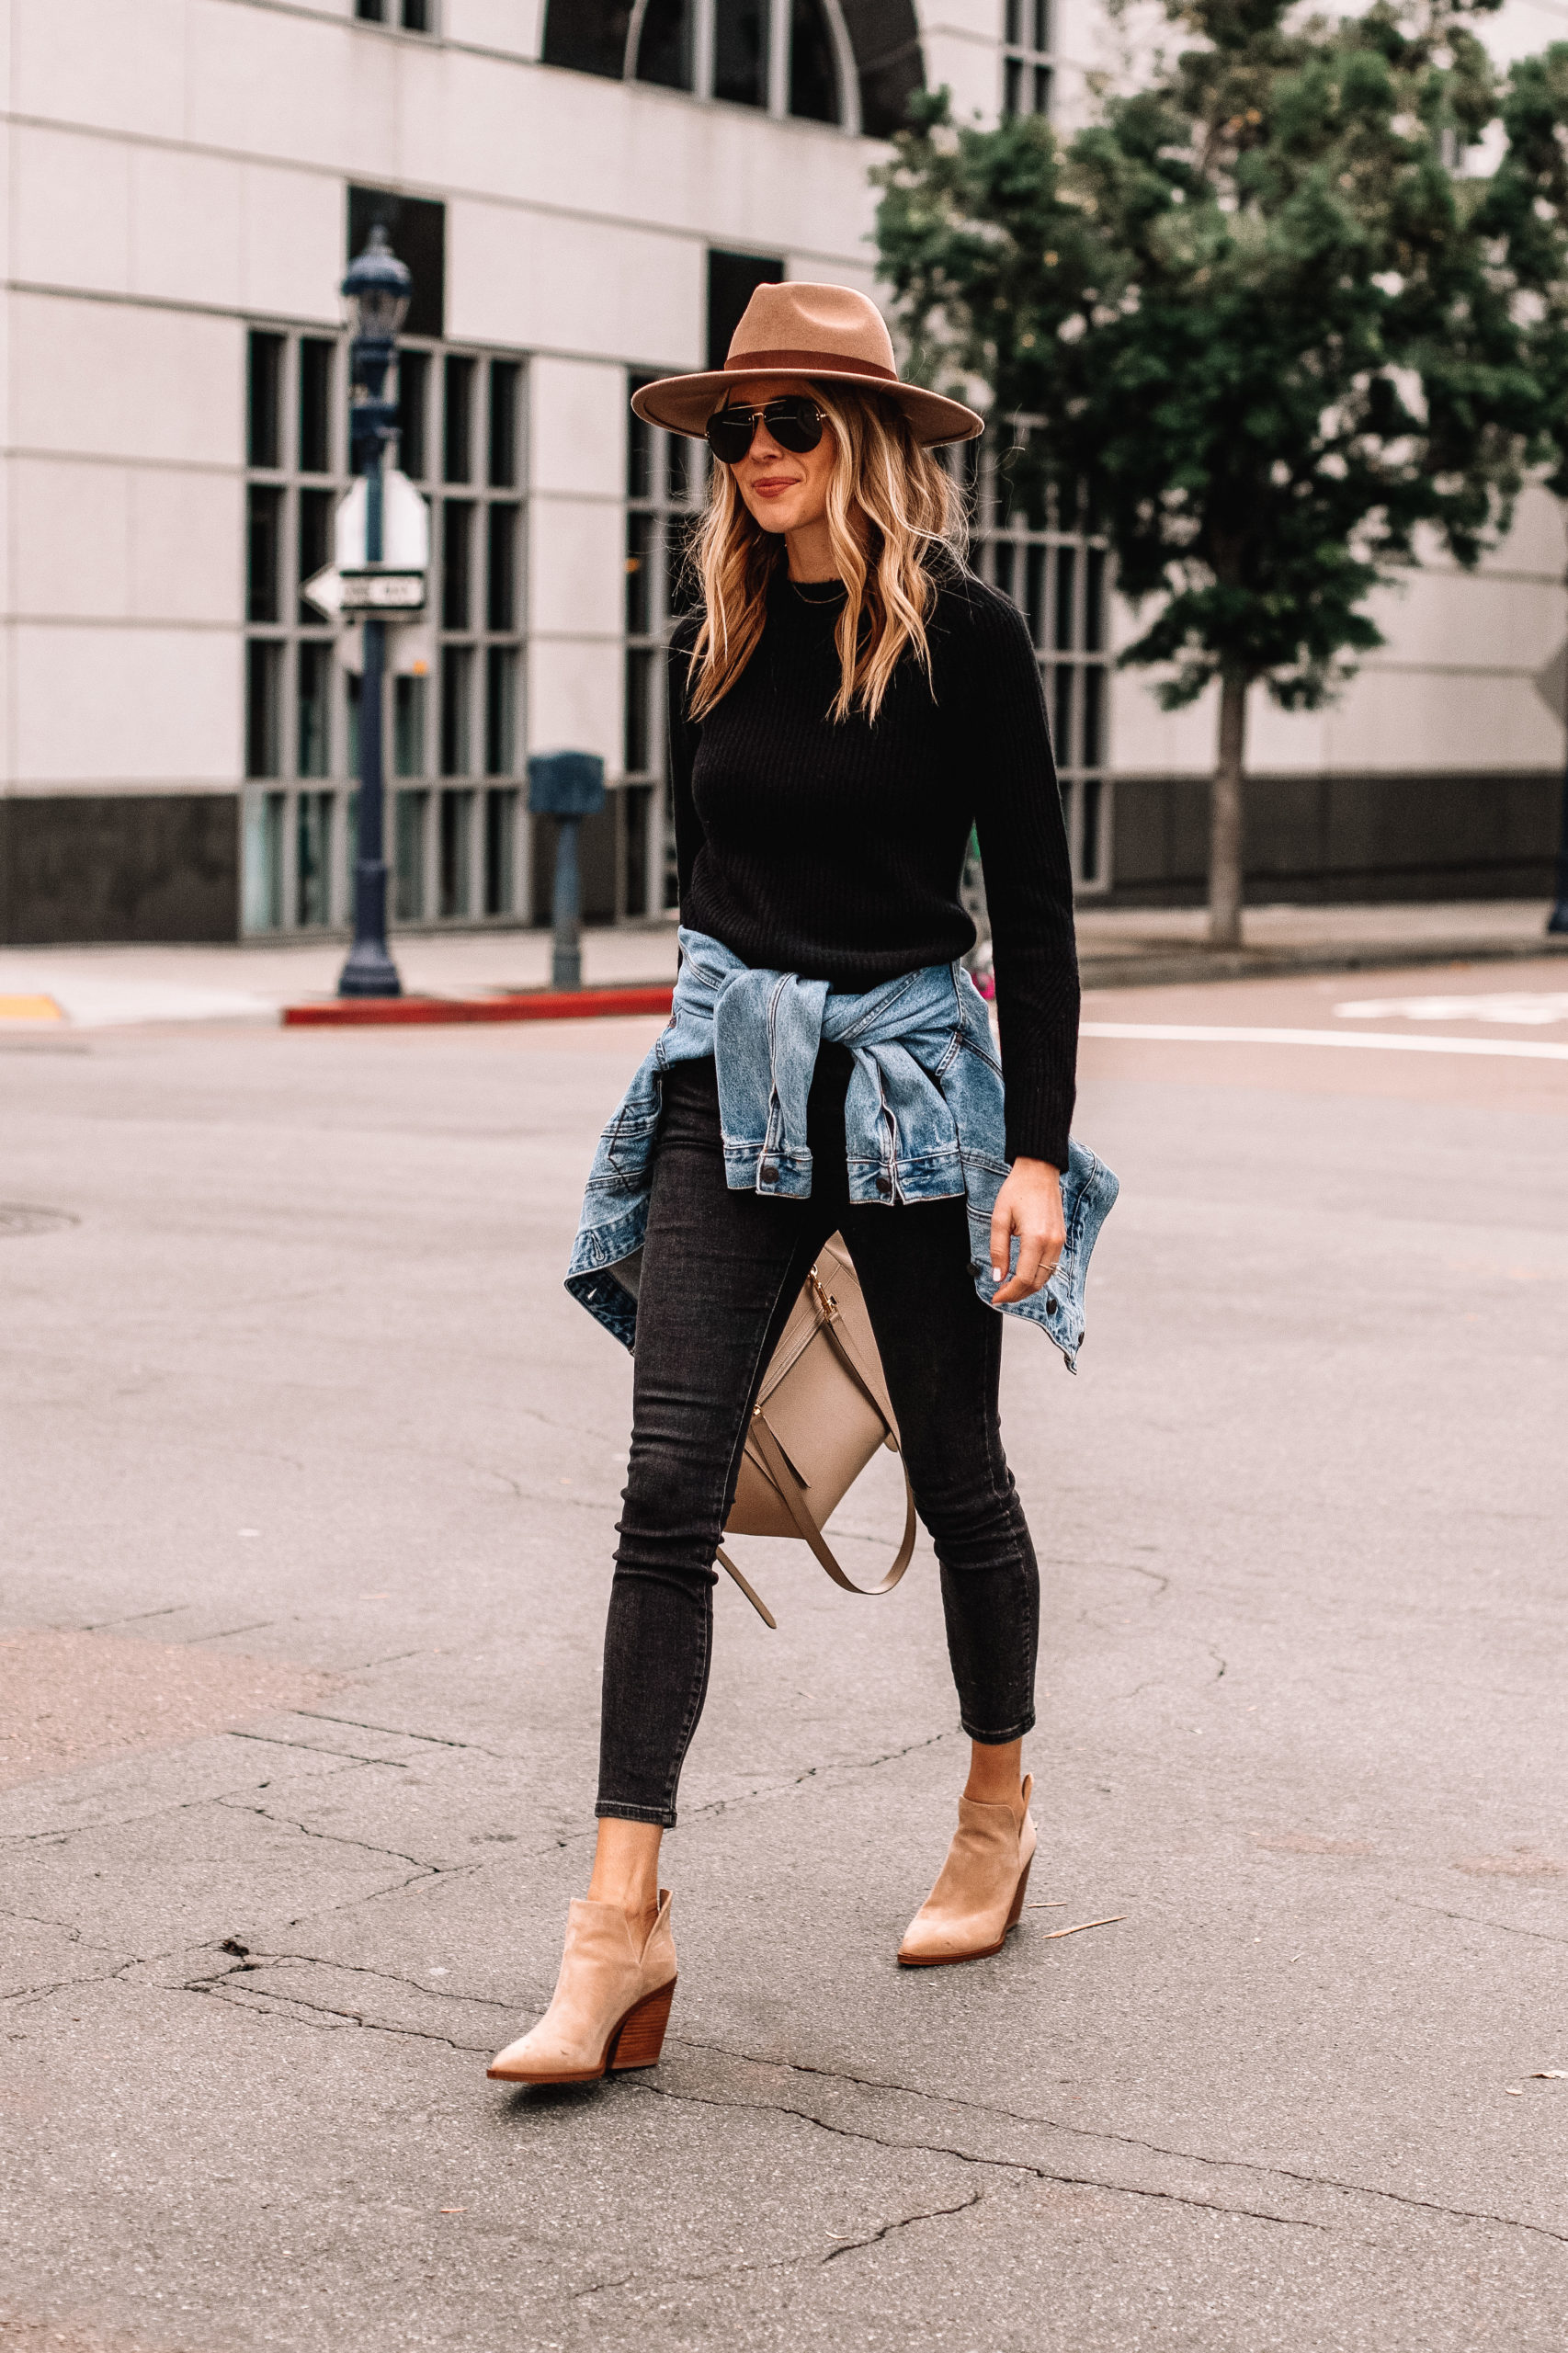 Fashion Jackson Black Sweater Black Jeans Denim Jacket Tan Booties